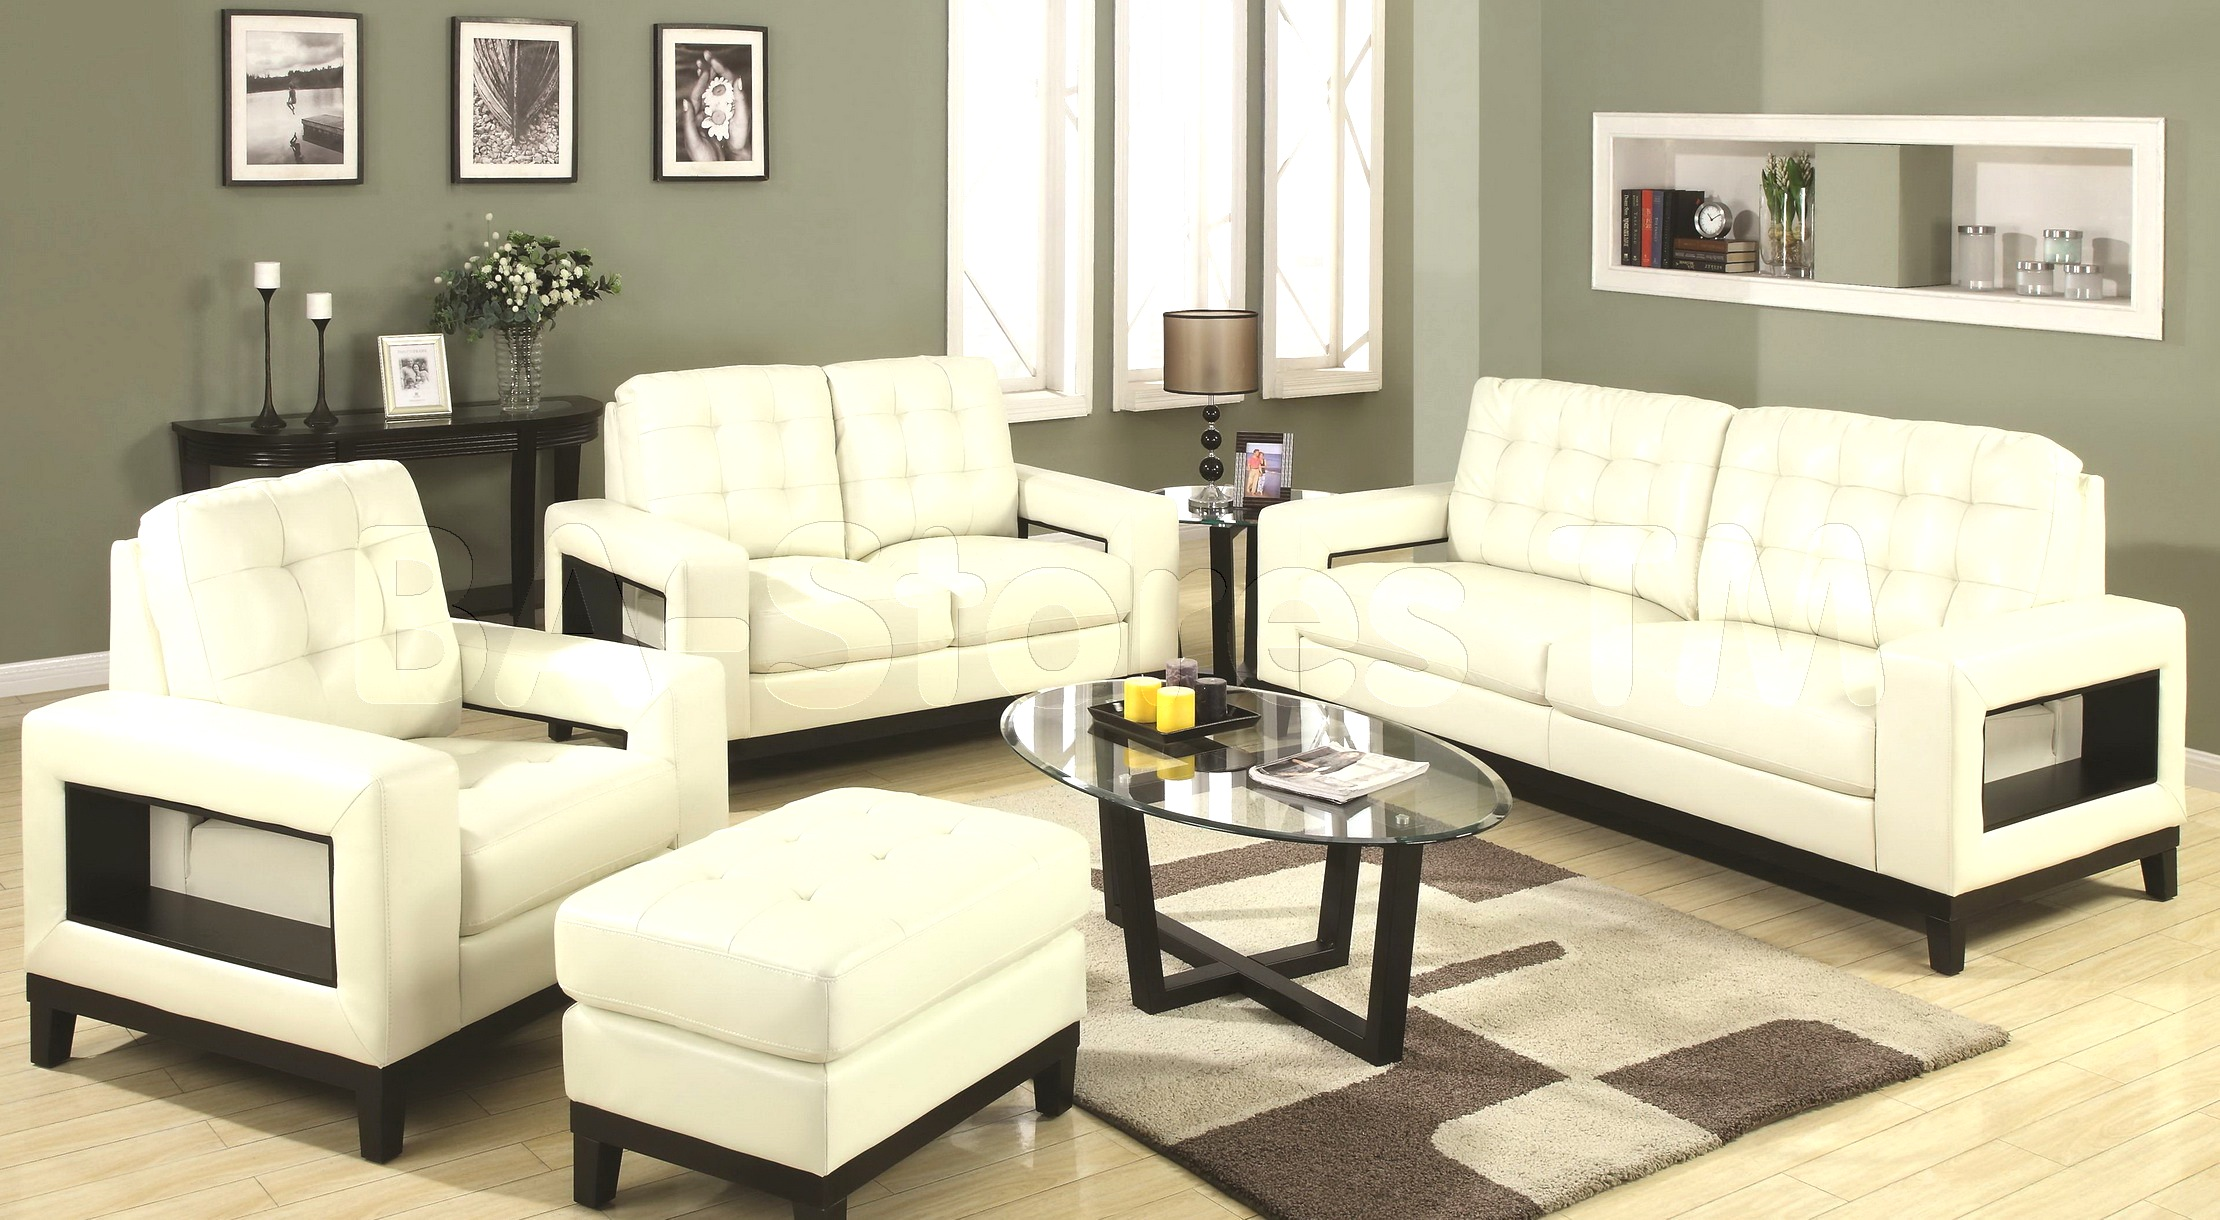 White living room furniture sets roselawnlutheran for Contemporary living room furniture sets